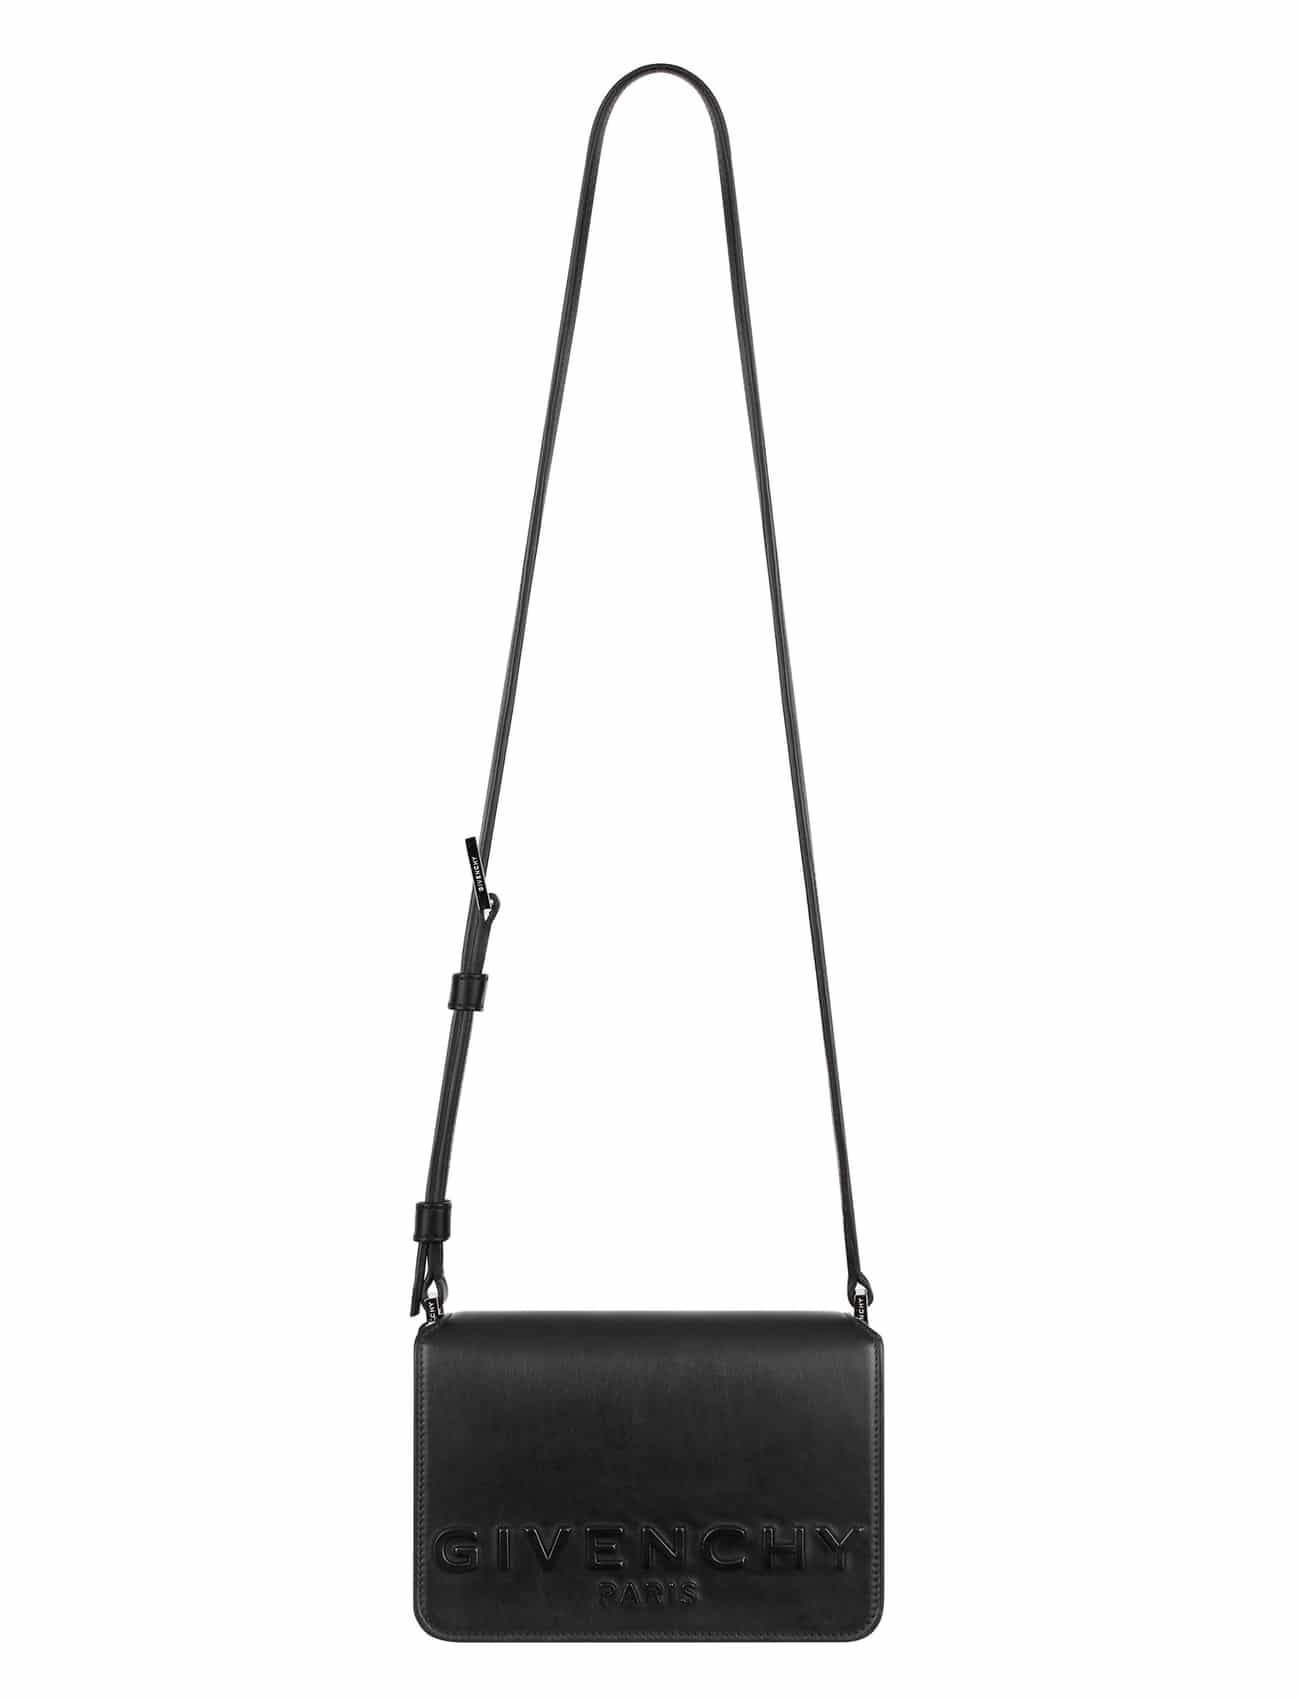 3f462ecea3 Givenchy Black Debossed Logo Small Cross Body Bag · Givenchy Black  Embellished with Metal Crosses Chain ...